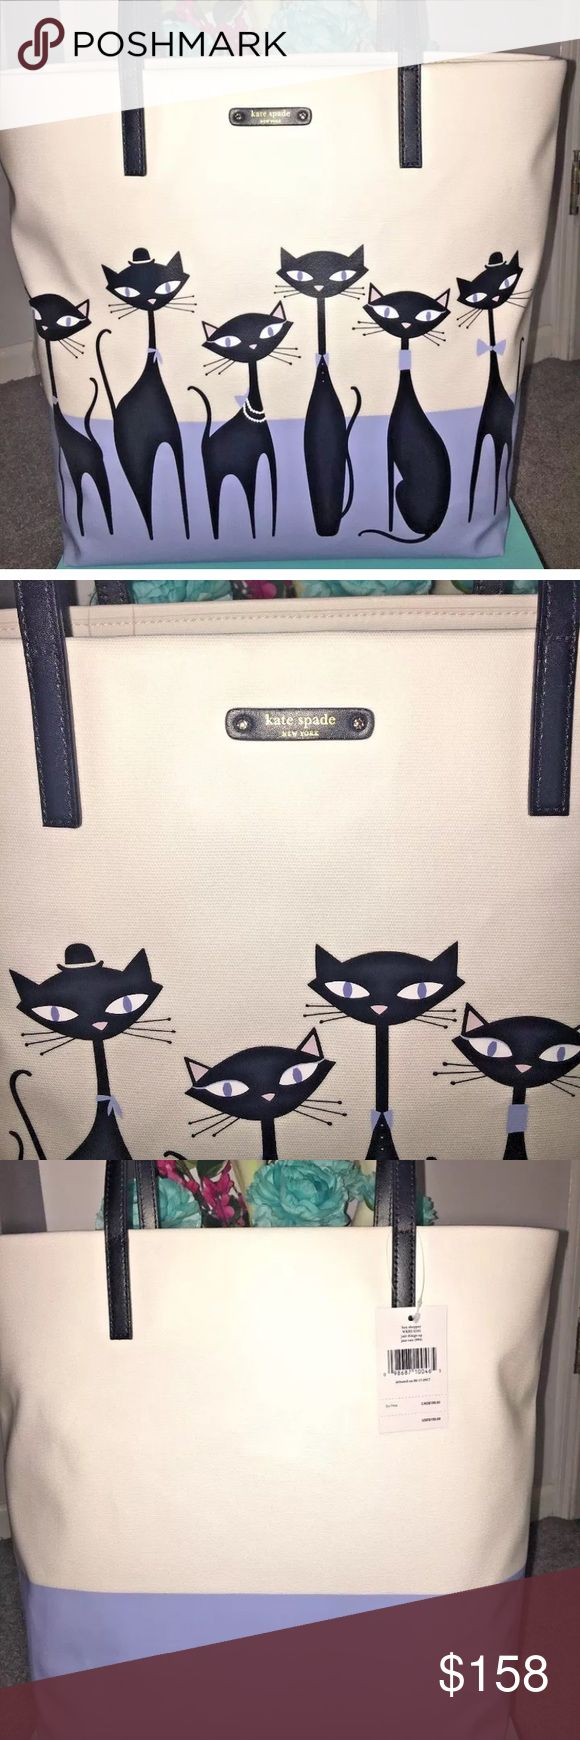 """♠️ Kate Spade Jazz Things Up Cat Bon Shopper Tote For every crazy cat lady to know:  Details: Kate Spade Jazz Things Up Collection  Bon Shopper Jazz Cats (984) in Color Black Debuted on 6/17/2017  Measurements Approximately: 12"""" x 13.5"""" x 5"""" Strap Drop is 8.5"""" Inches  -Fits any phone and some essentials for the on-the-go gal! -Open Tote (no zip) -2 Side bag open slots for Credit Cards kate spade Bags Totes"""